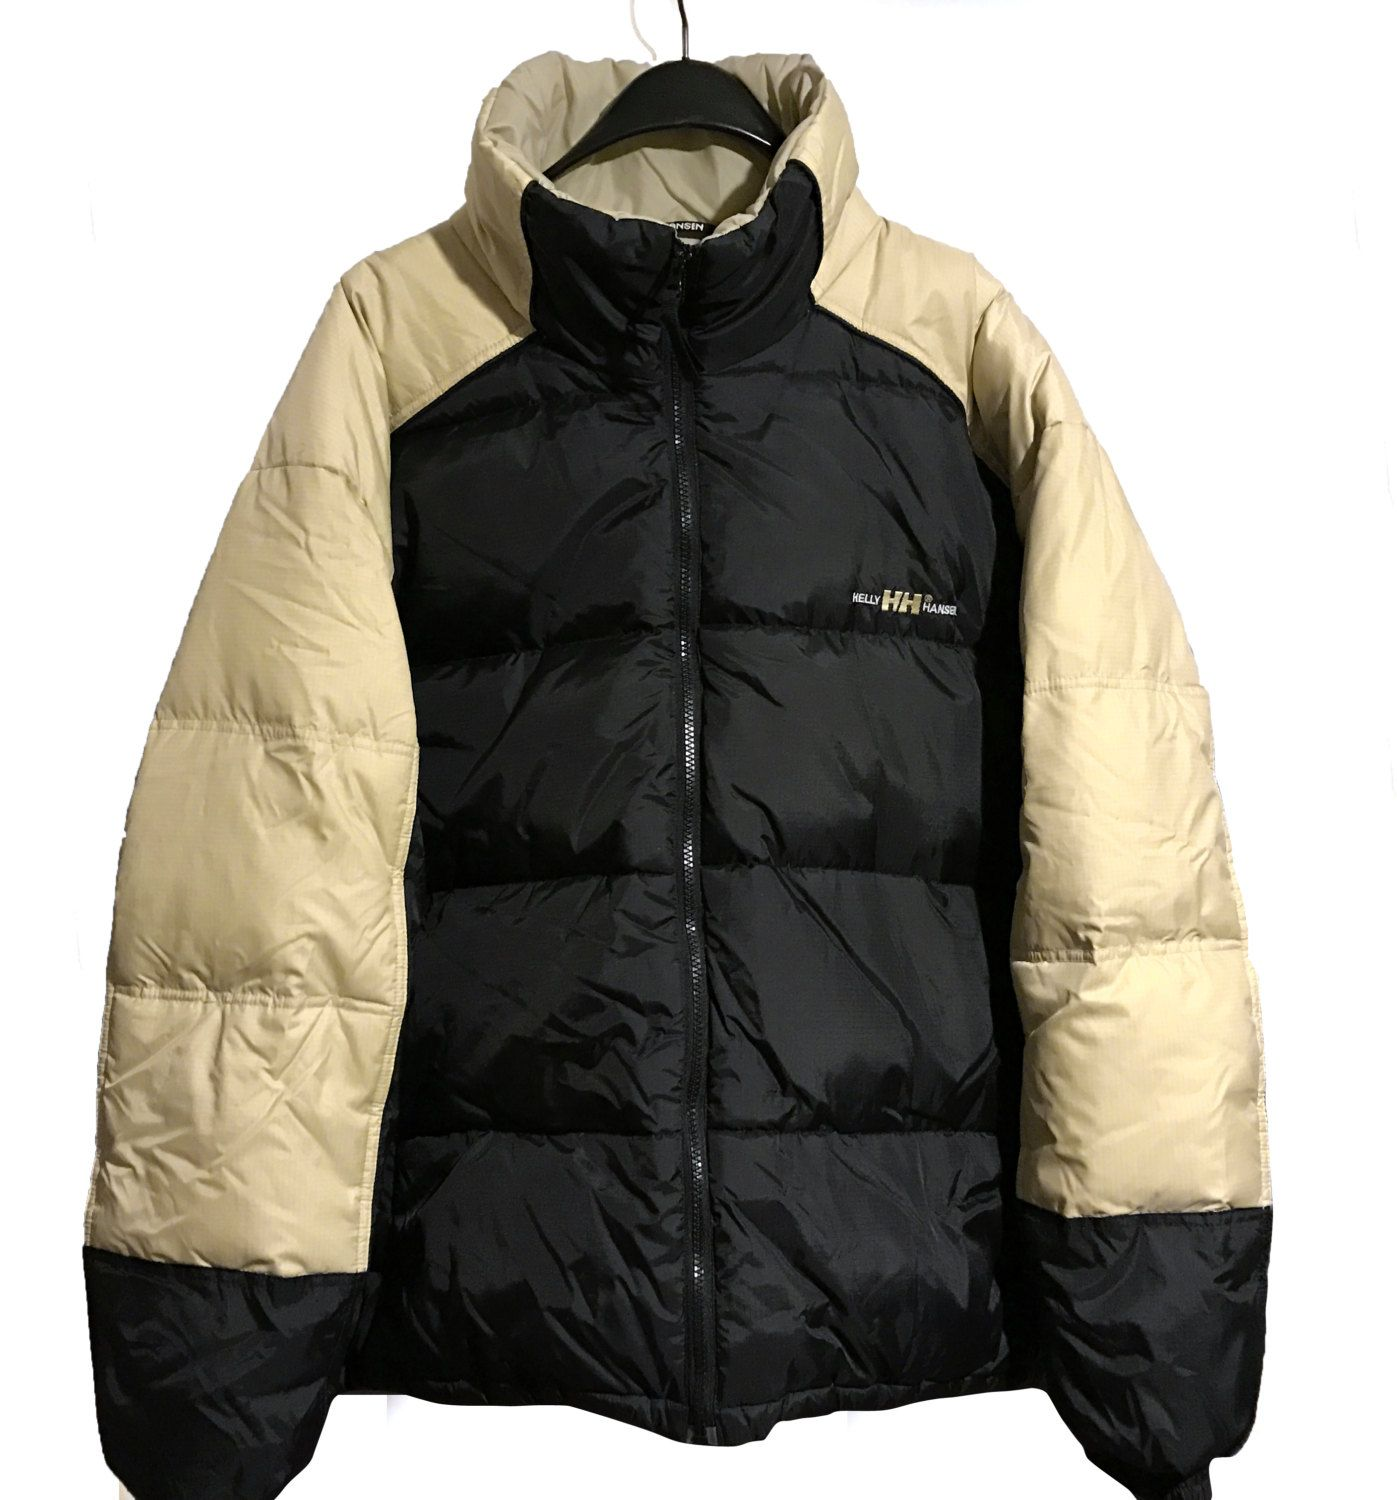 Vintage 90s Nautica Competition Reversible Goose Down Puffer Etsy Jackets Urban Street Style Puffer [ 1500 x 1397 Pixel ]